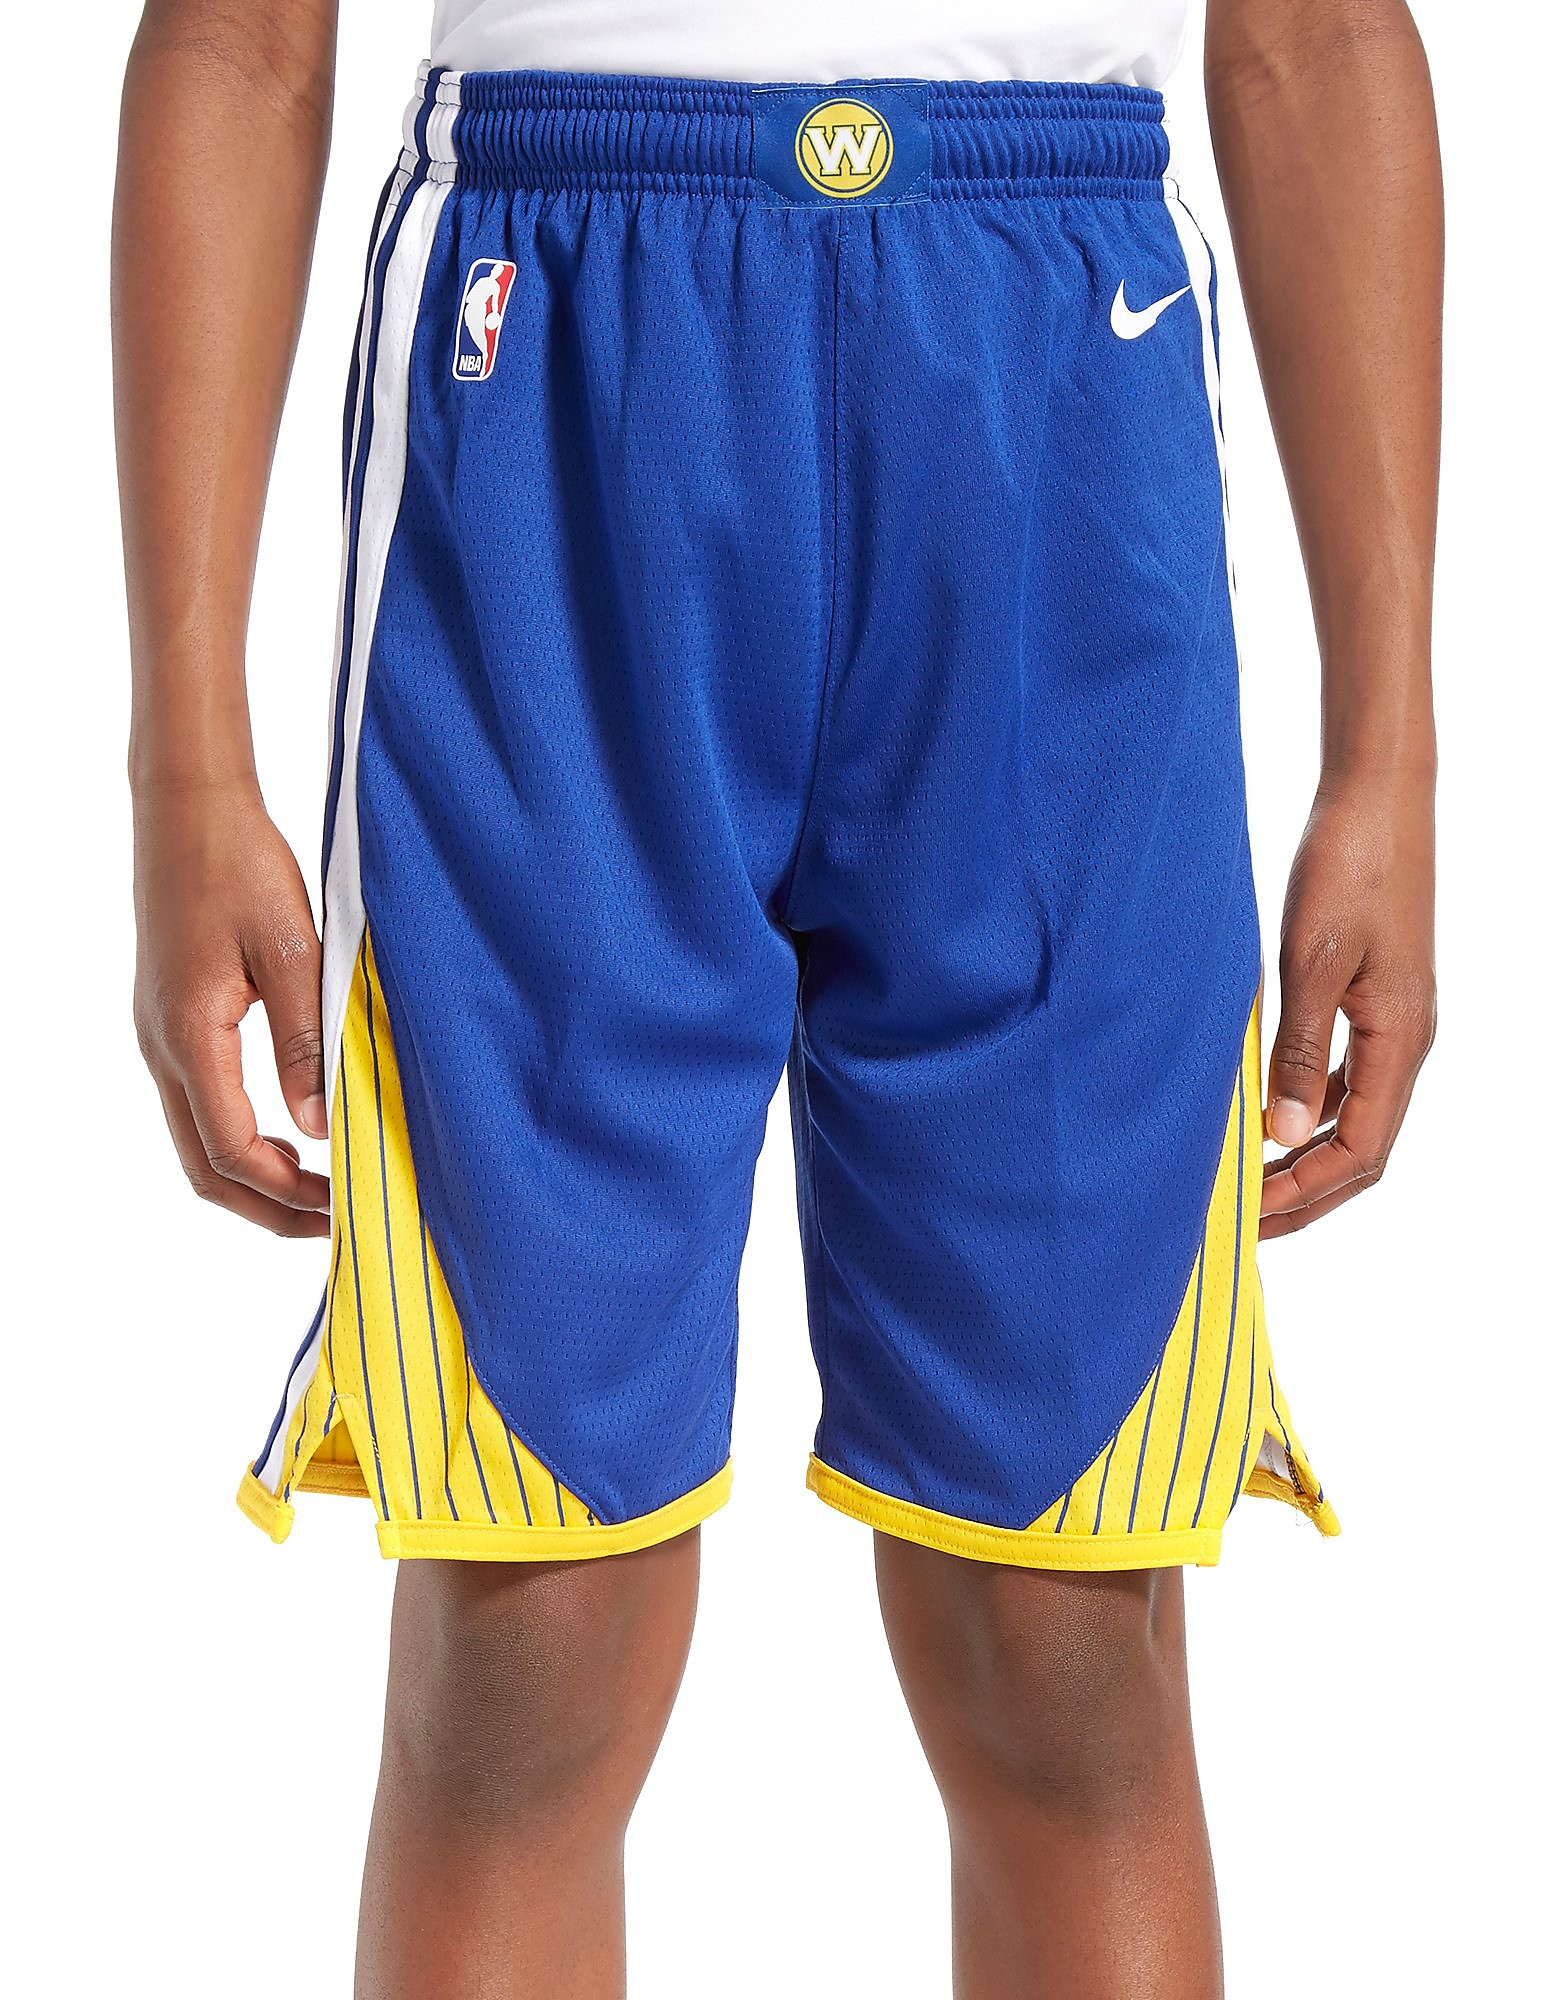 Nike pantalón corto Golden State Warriors Swingman júnior